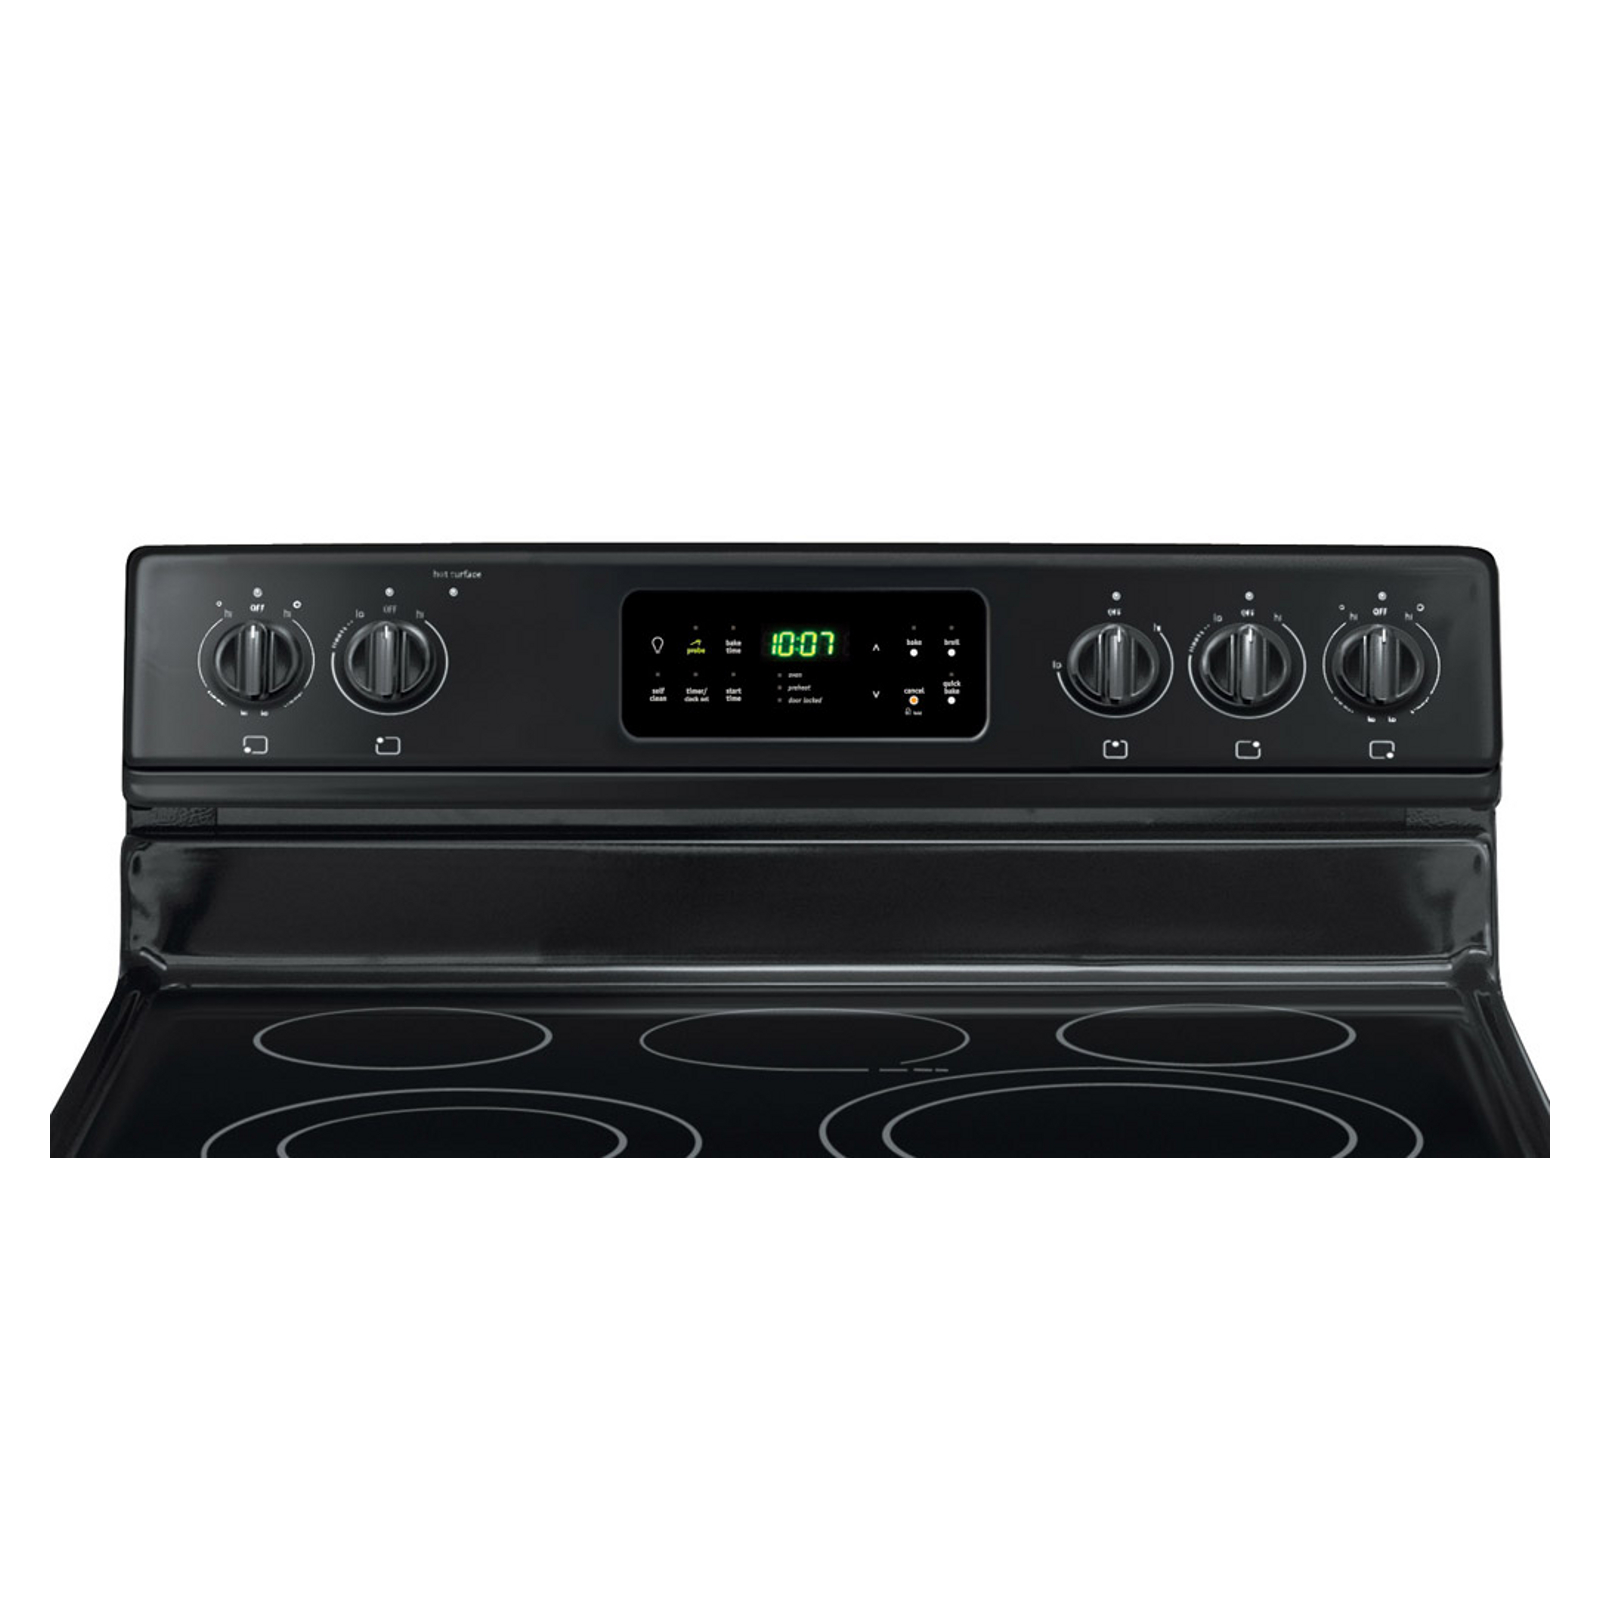 Frigidaire Gallery 5.7 cu. ft. Electric Range